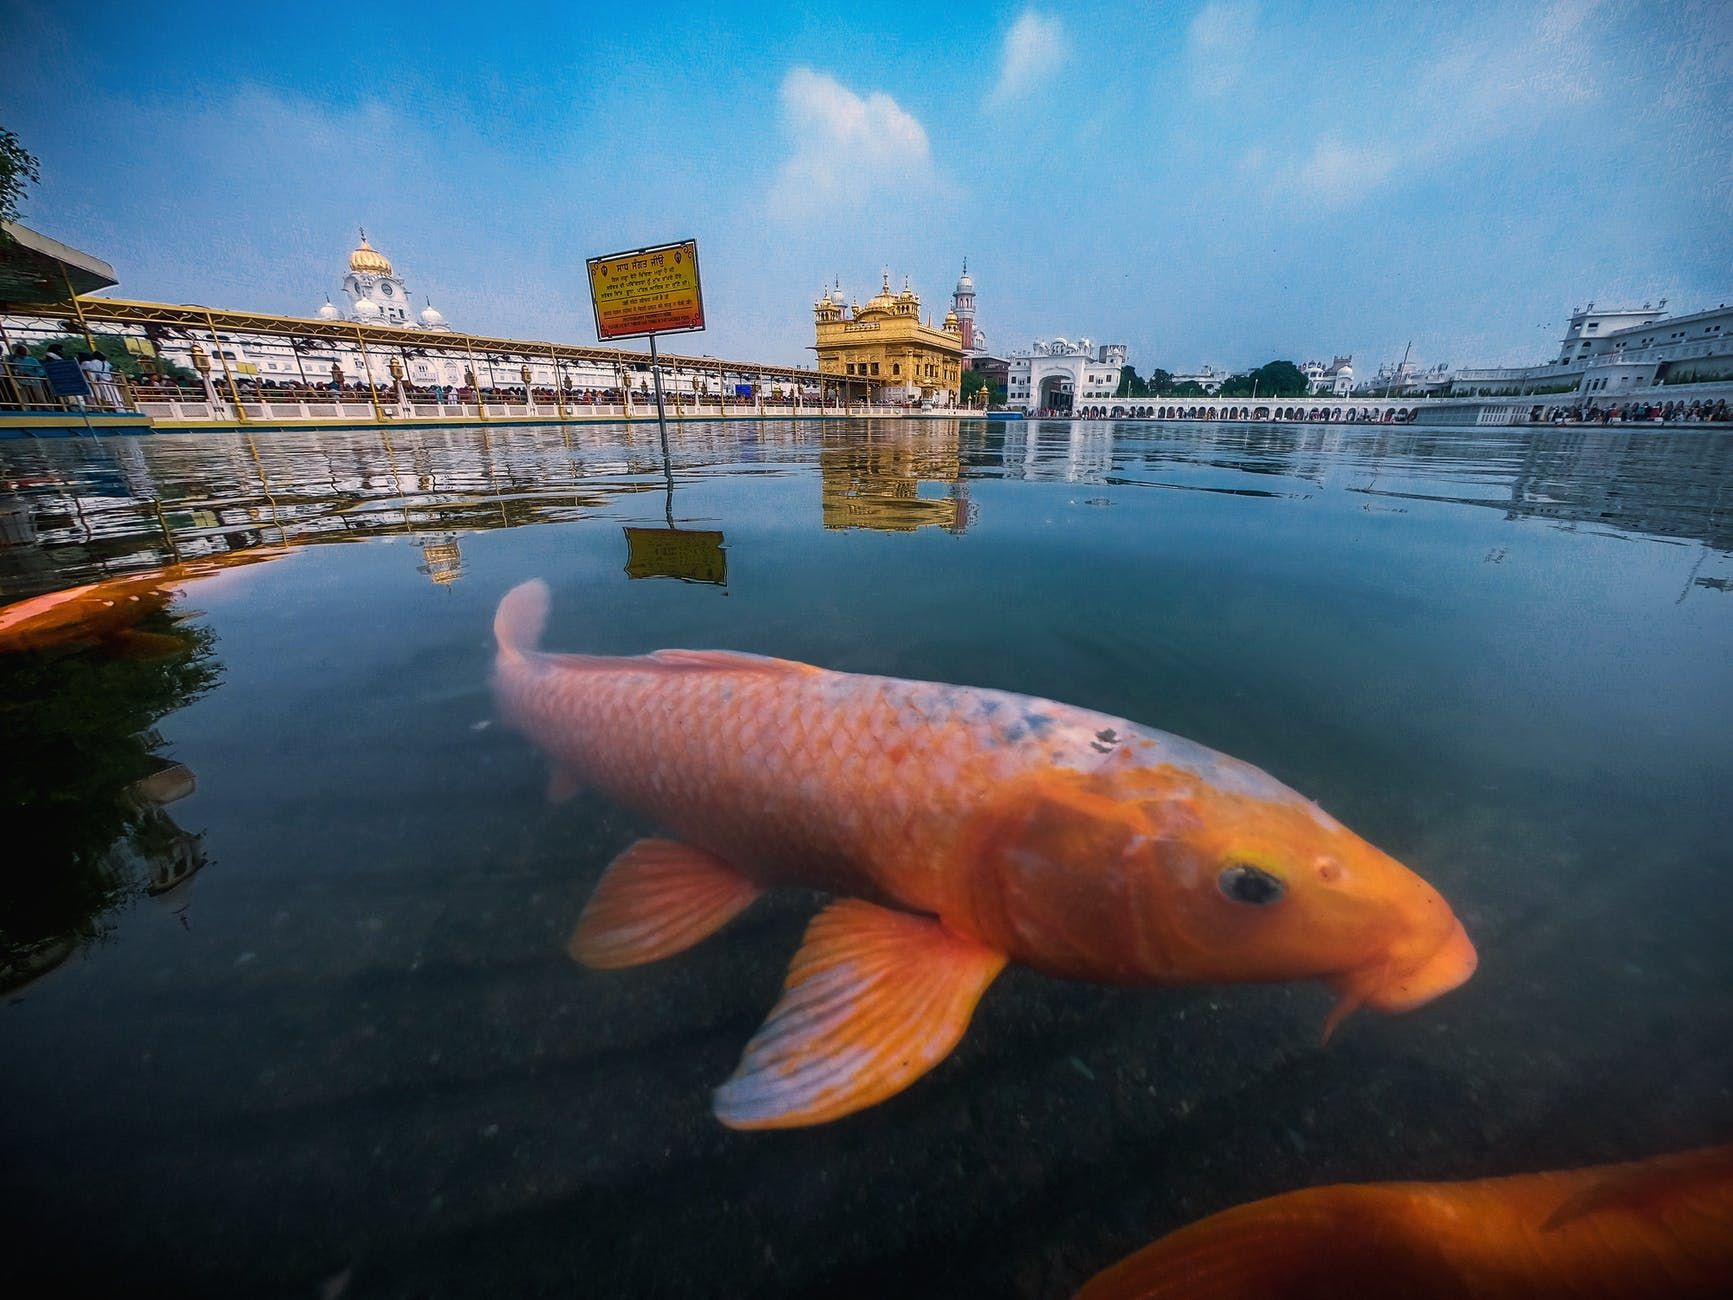 goldfish in pond near temple